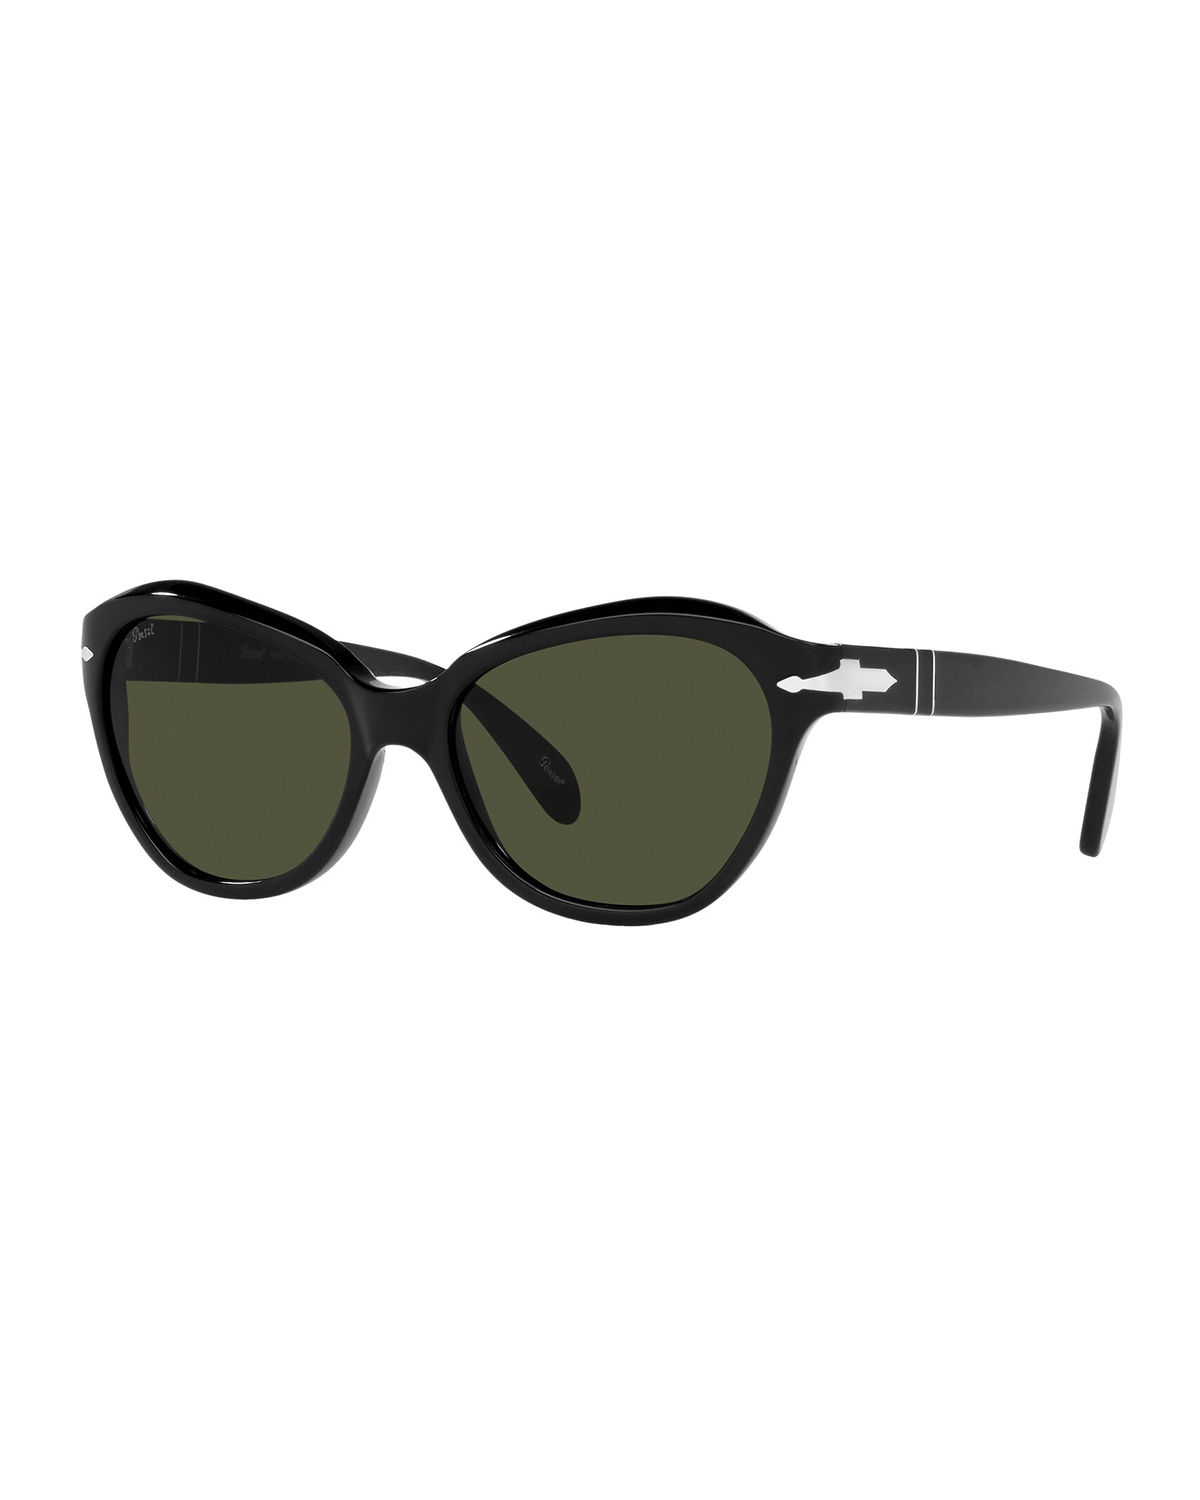 Persol ACETATE BUTTERFLY SUNGLASSES